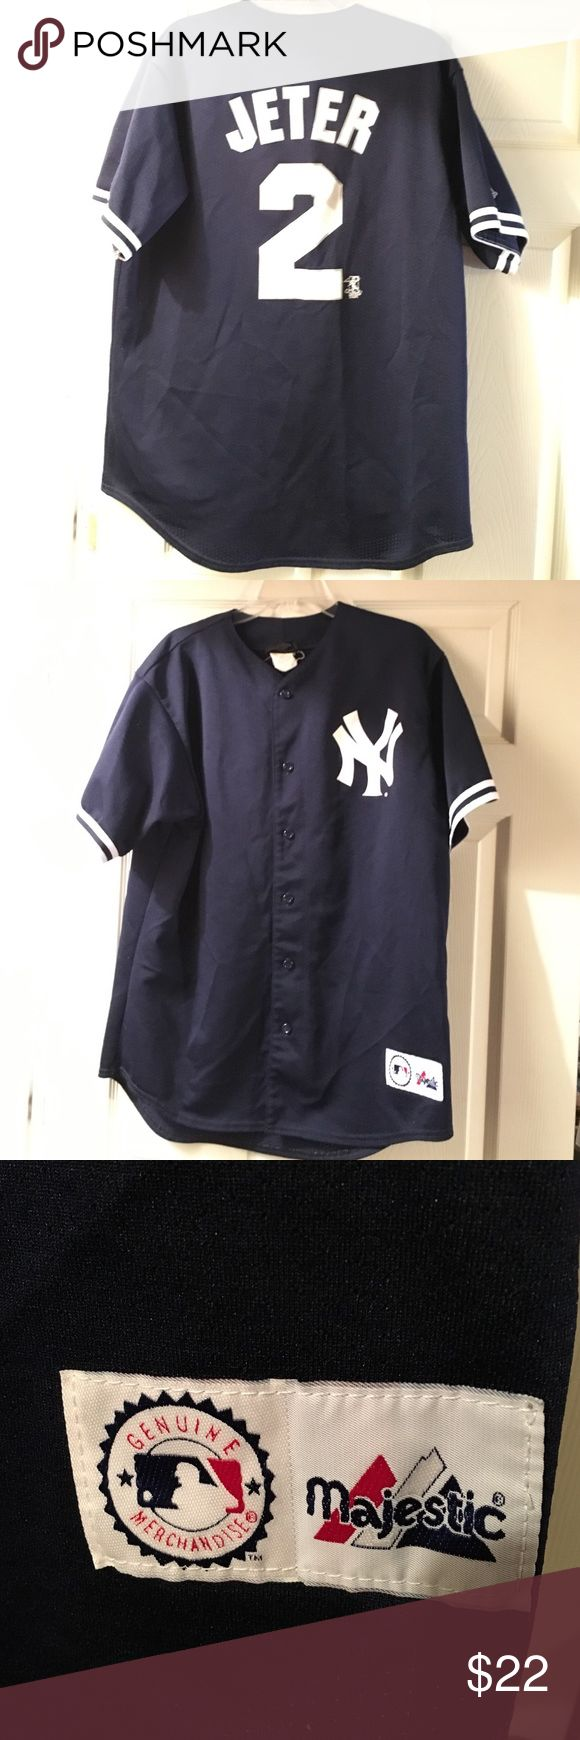 Derek Jeter baseball jersey Bought for his last game playing here in Boston. Not a Yankee fan. But loved him! I'm from Boston! Will no longer wear. Majestic Shirts